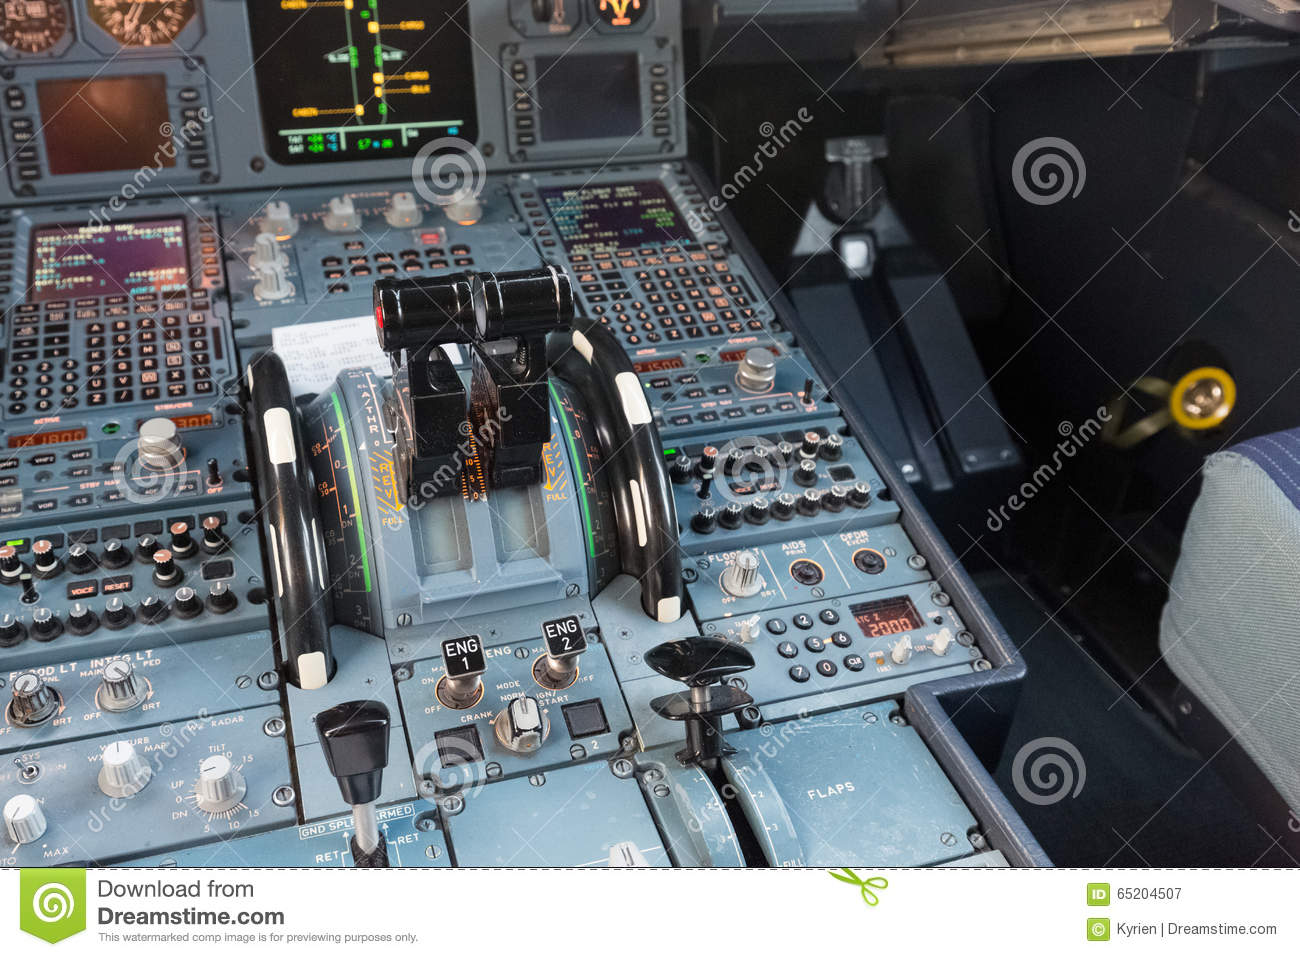 Airplane Throttle Levers : Airbus cockpit throttle lever stock image